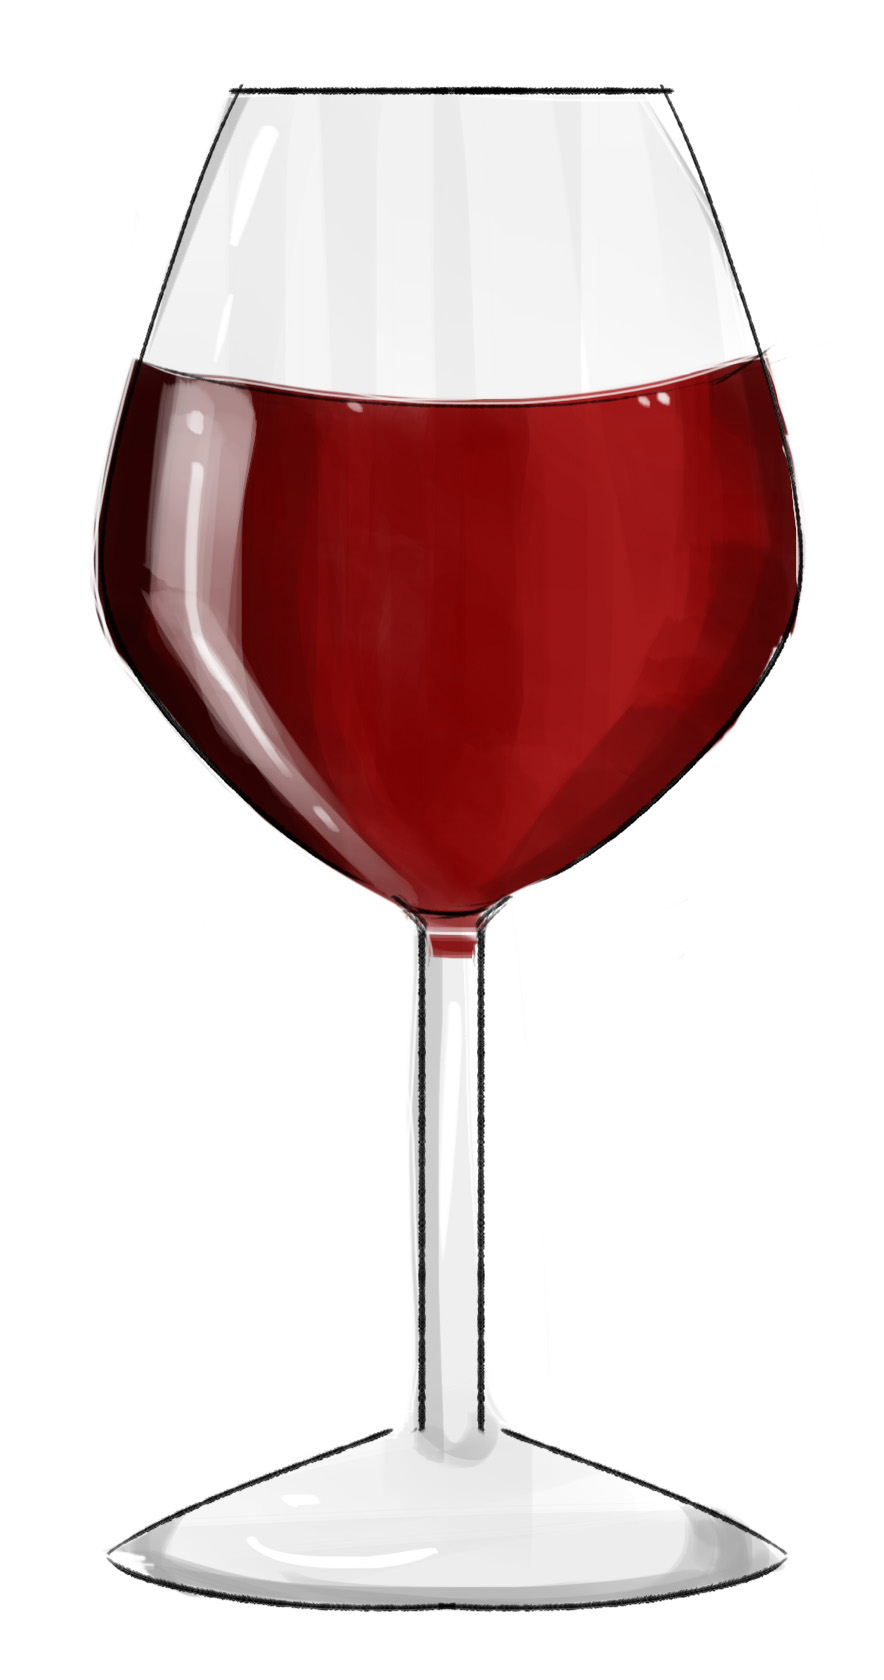 Red wine - antioxidants